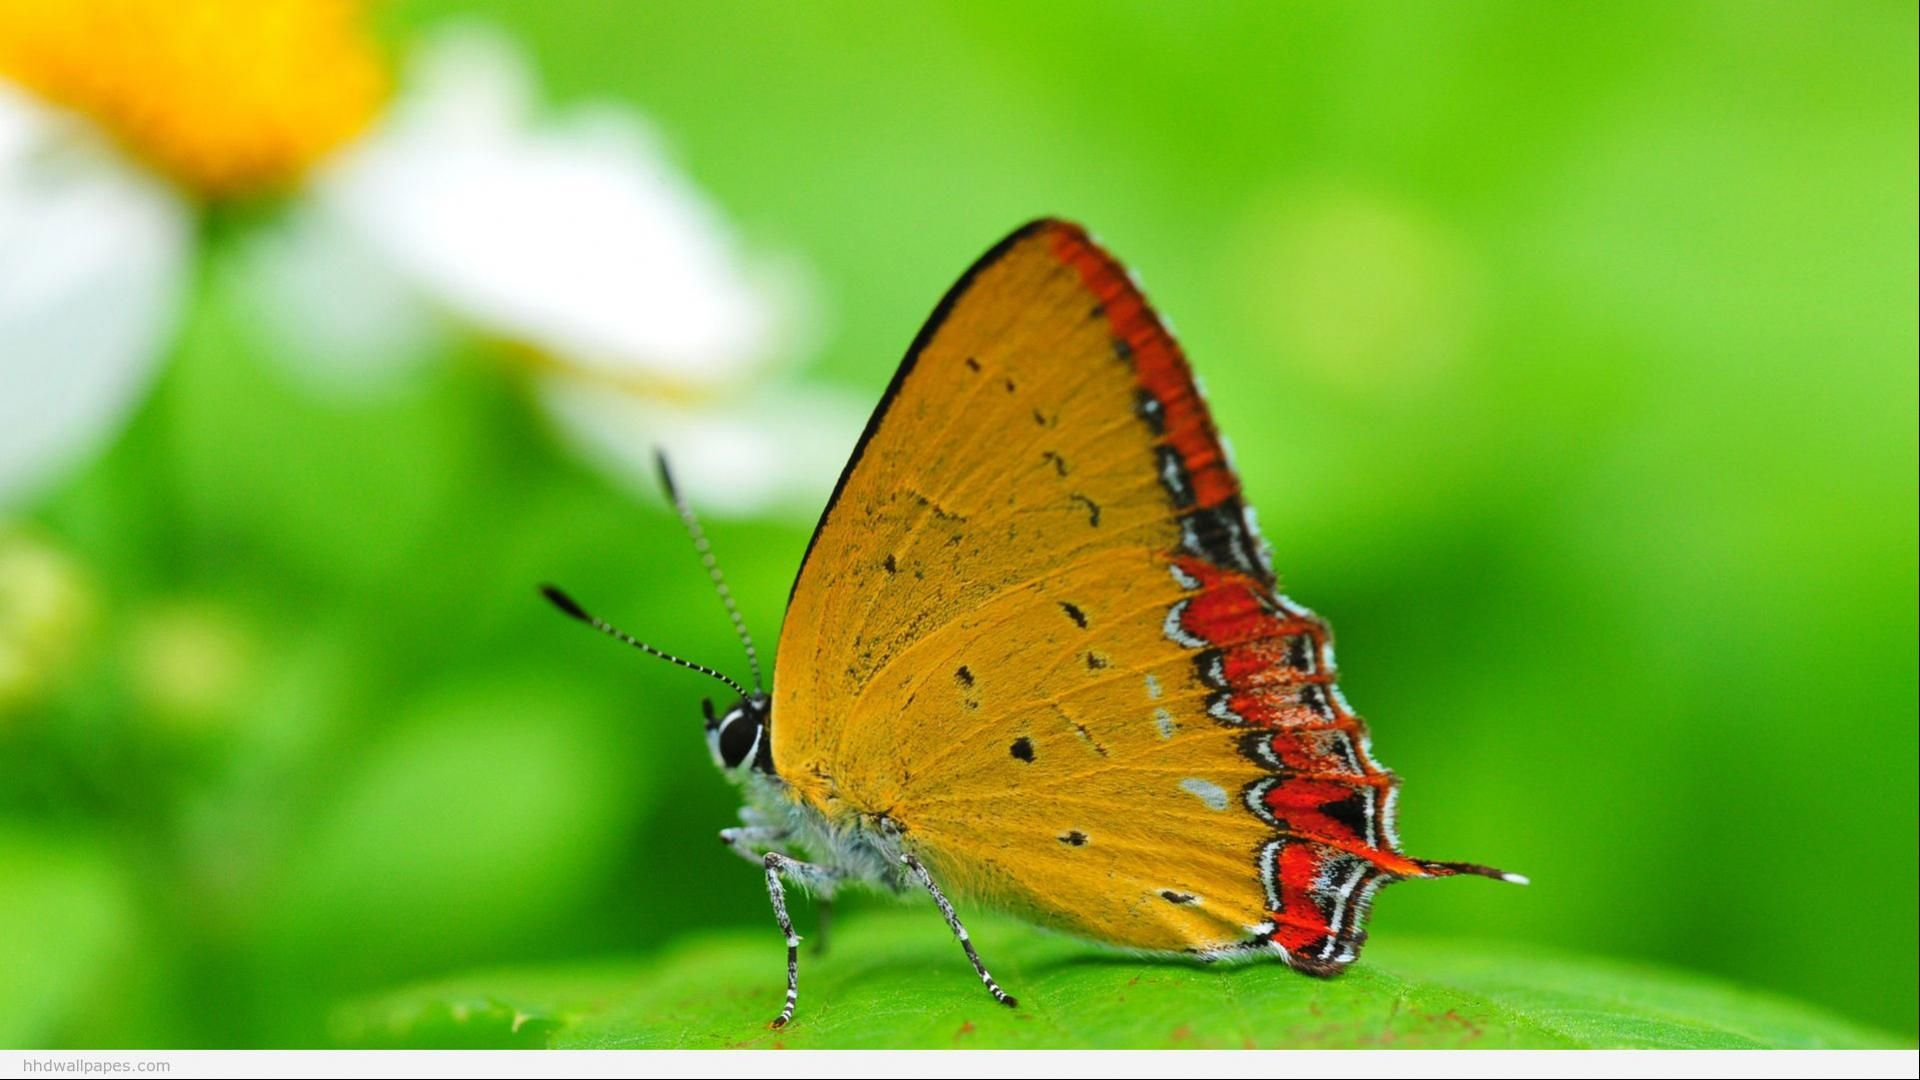 22133best Hd Nature Free Stock Photos Download For Commercial Use In Hd High Resolution Jpg Images Hd Nature Wallpapers Nature Wallpaper Butterfly Wallpaper